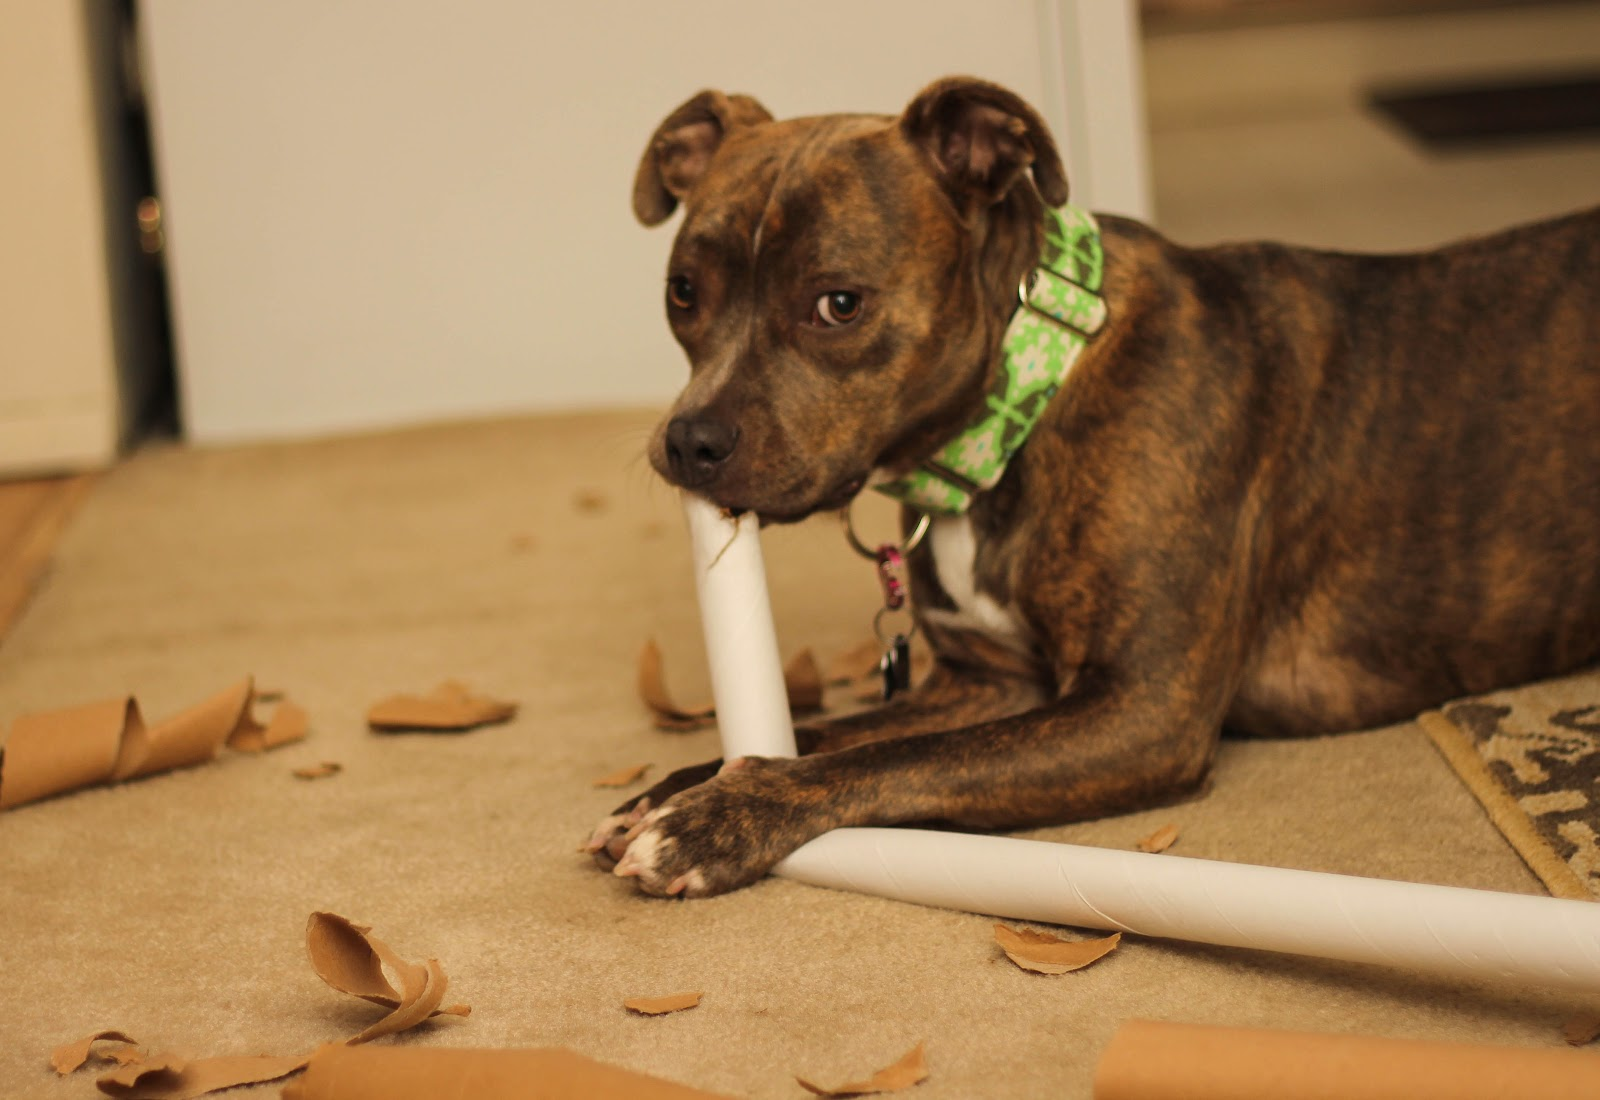 Why Do Dogs Eat Cardboard? | The Dog People by Rover.com